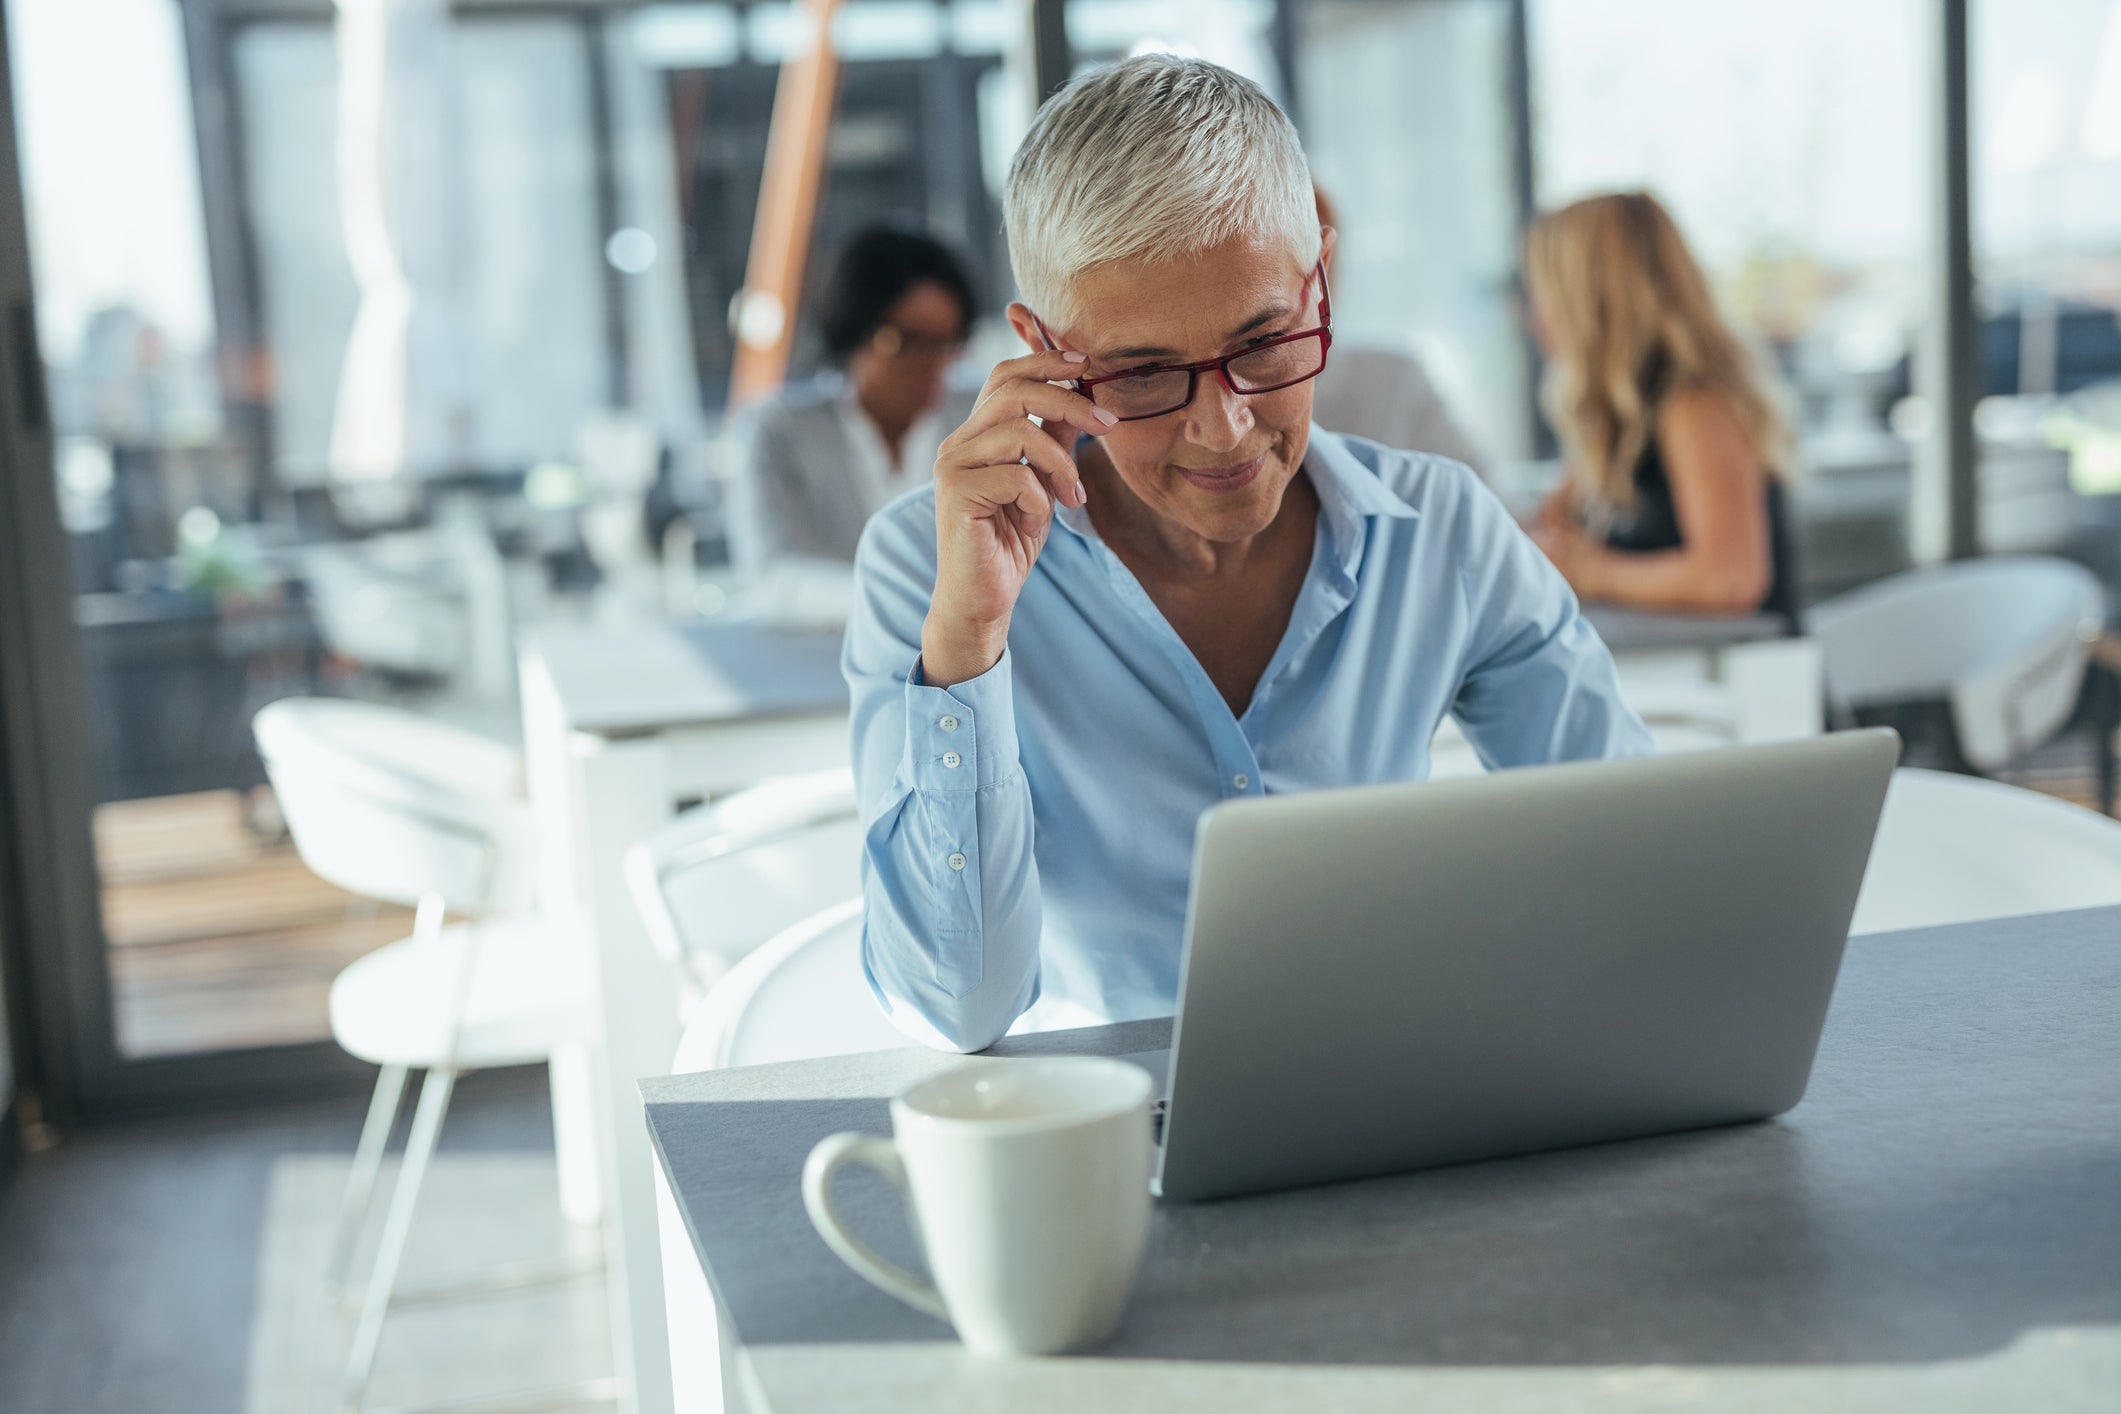 These 3 Common Retirement Problems All Have the Same Simple Solution | The Motley Fool